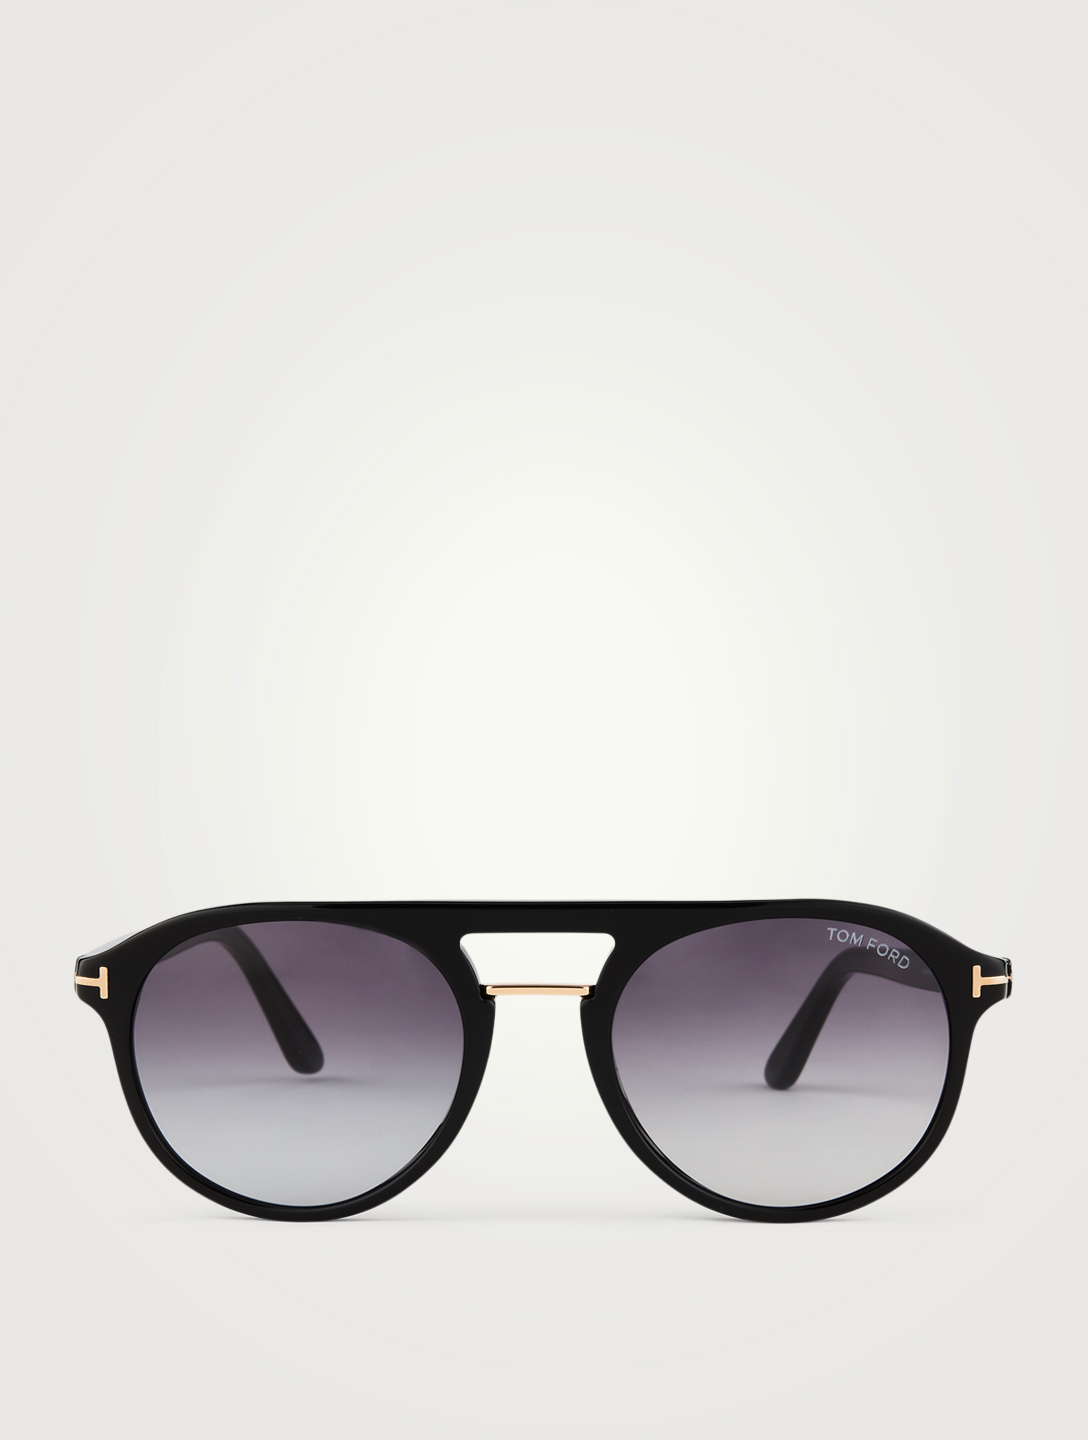 9c7a6b5937a7 TOM FORD Ivan Round Sunglasses | Holt Renfrew